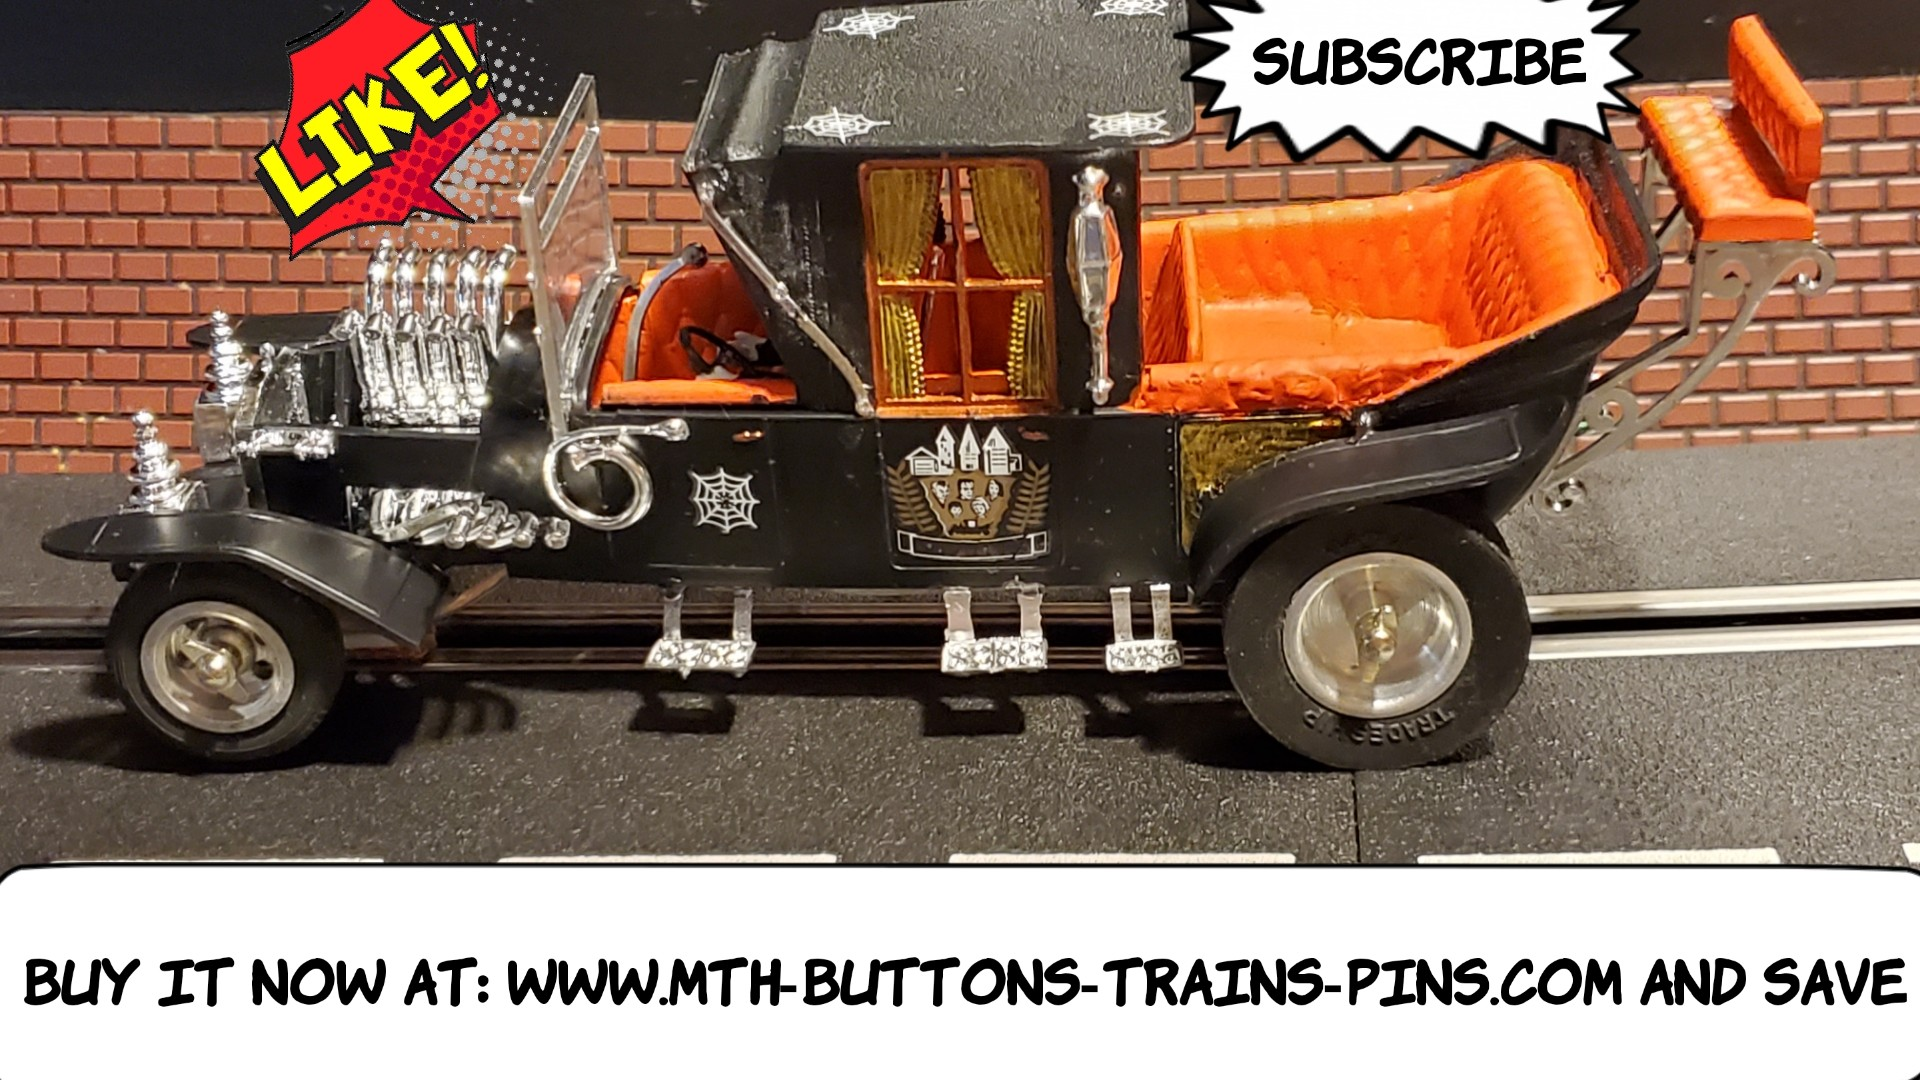 The Munster Koach Slot Car 1/24 Scale with Driver